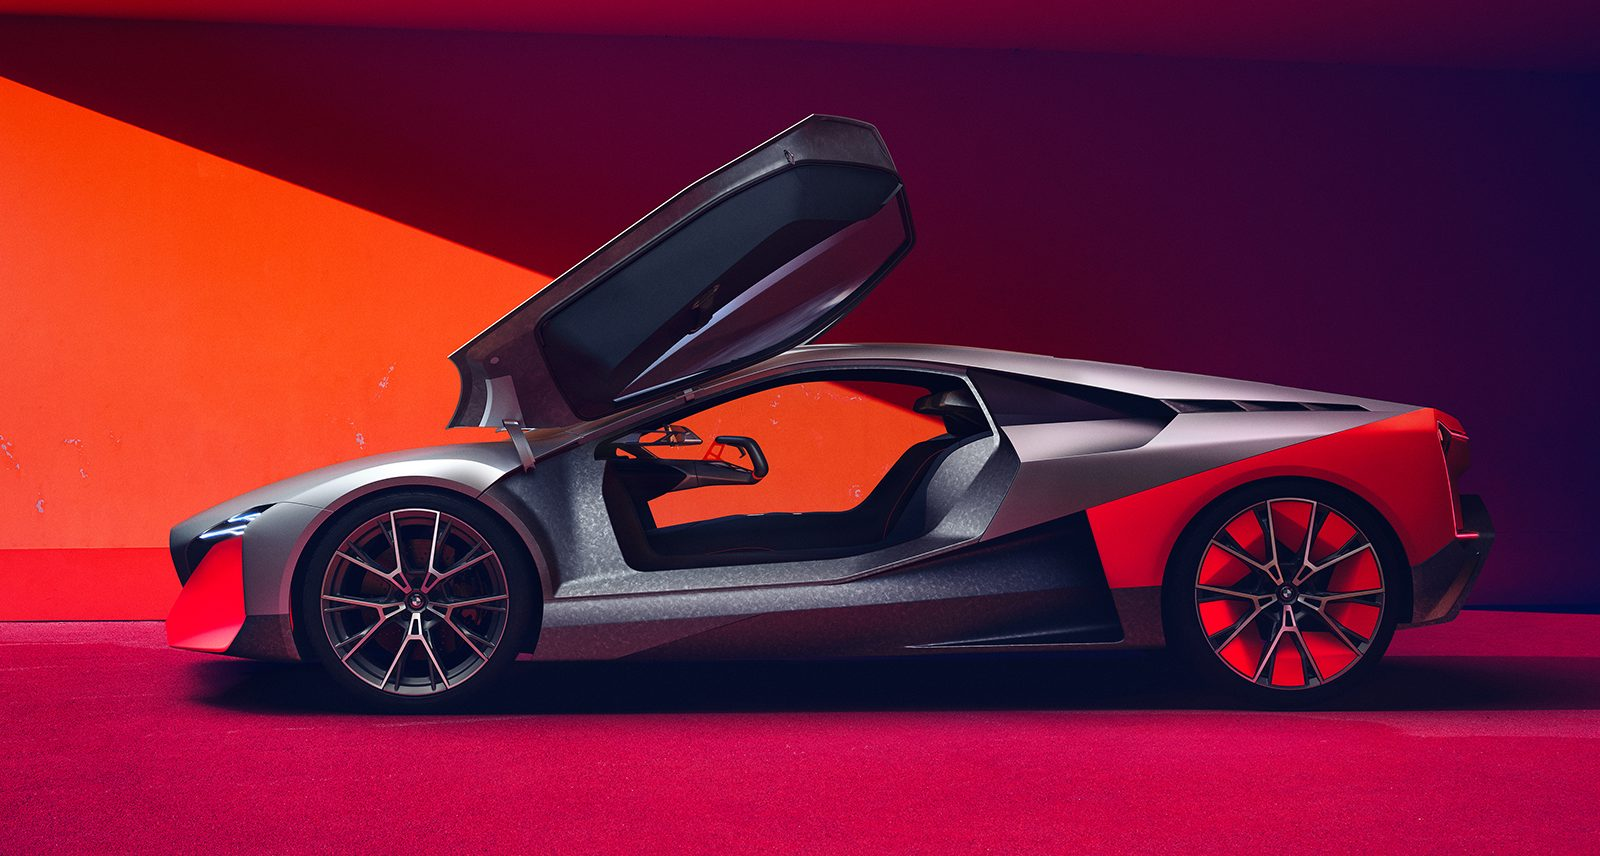 5 Reasons to Get Very Excited for BMW's Vision M NEXT